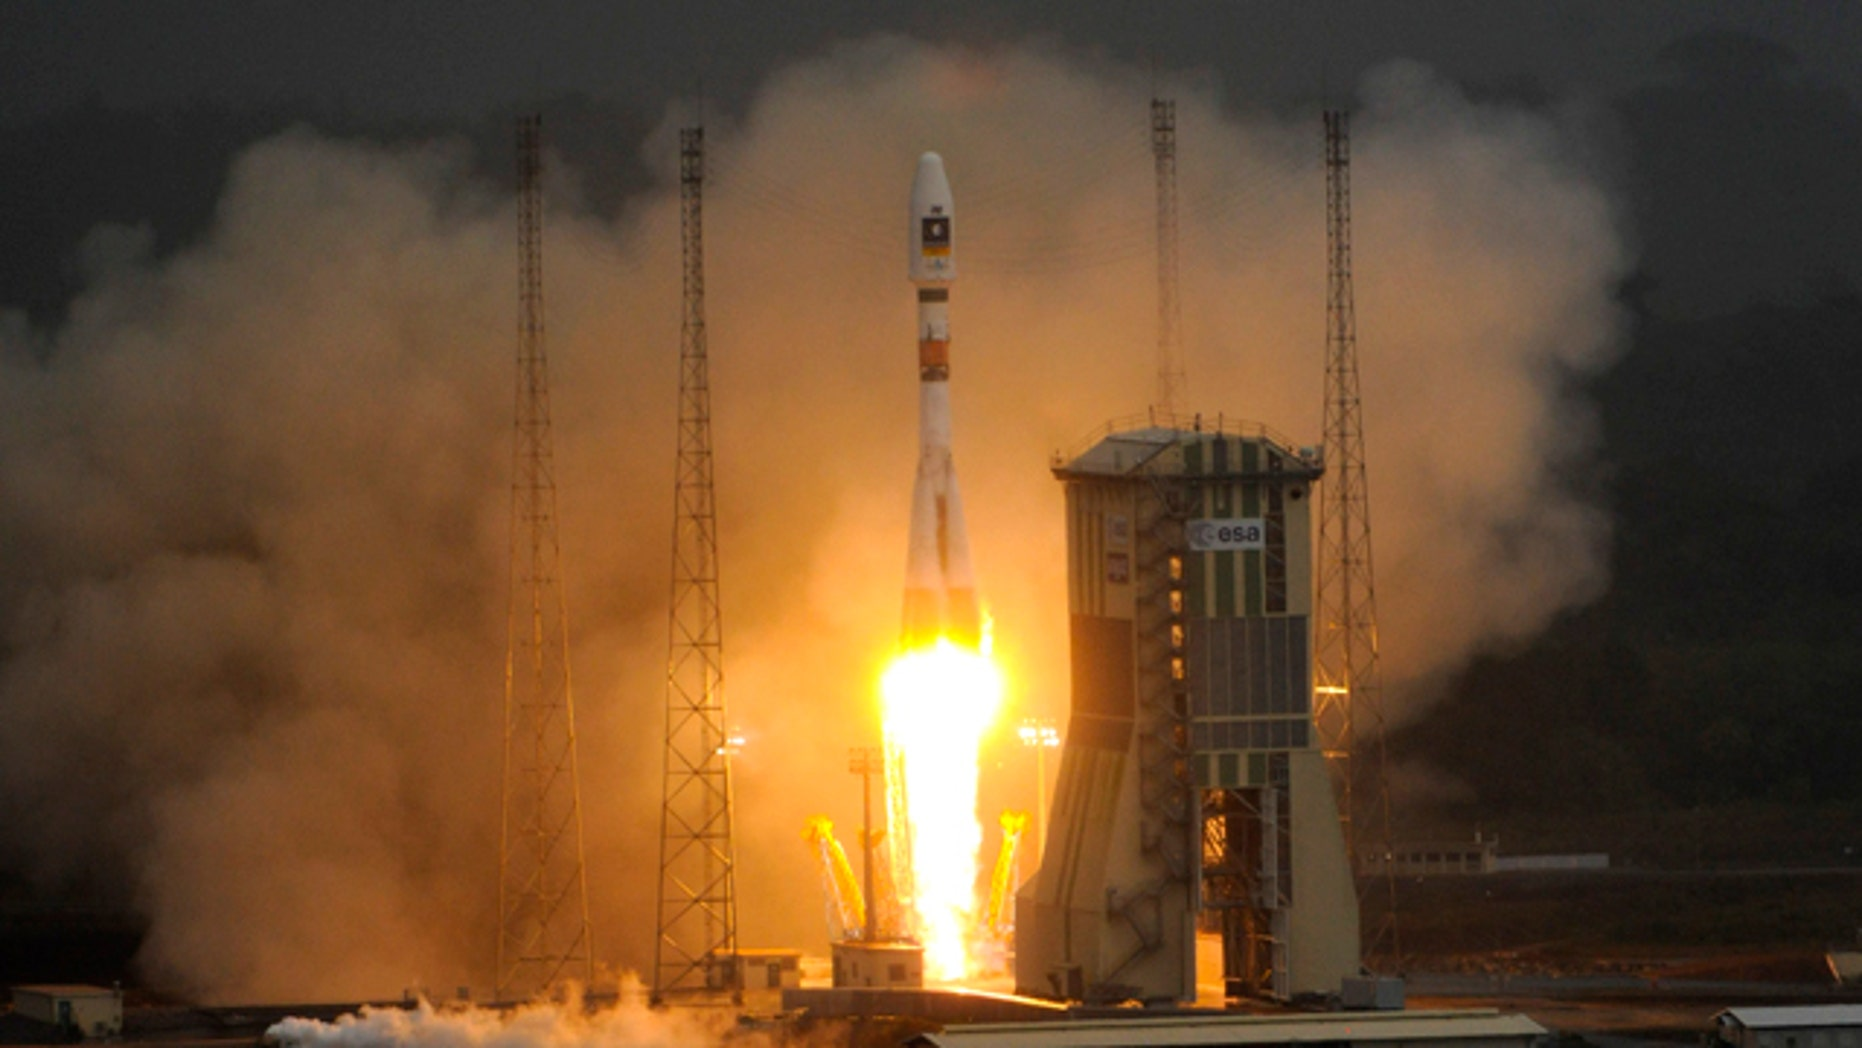 Oct. 21, 2011: Russia's Soyuz  rocket lifts off, for the first time, from Europe's space base of Kourou, French Guiana -- carrying the first two satellites of the European Union's Galileo navigation system, the main rival to the ubiquitous American GPS network.